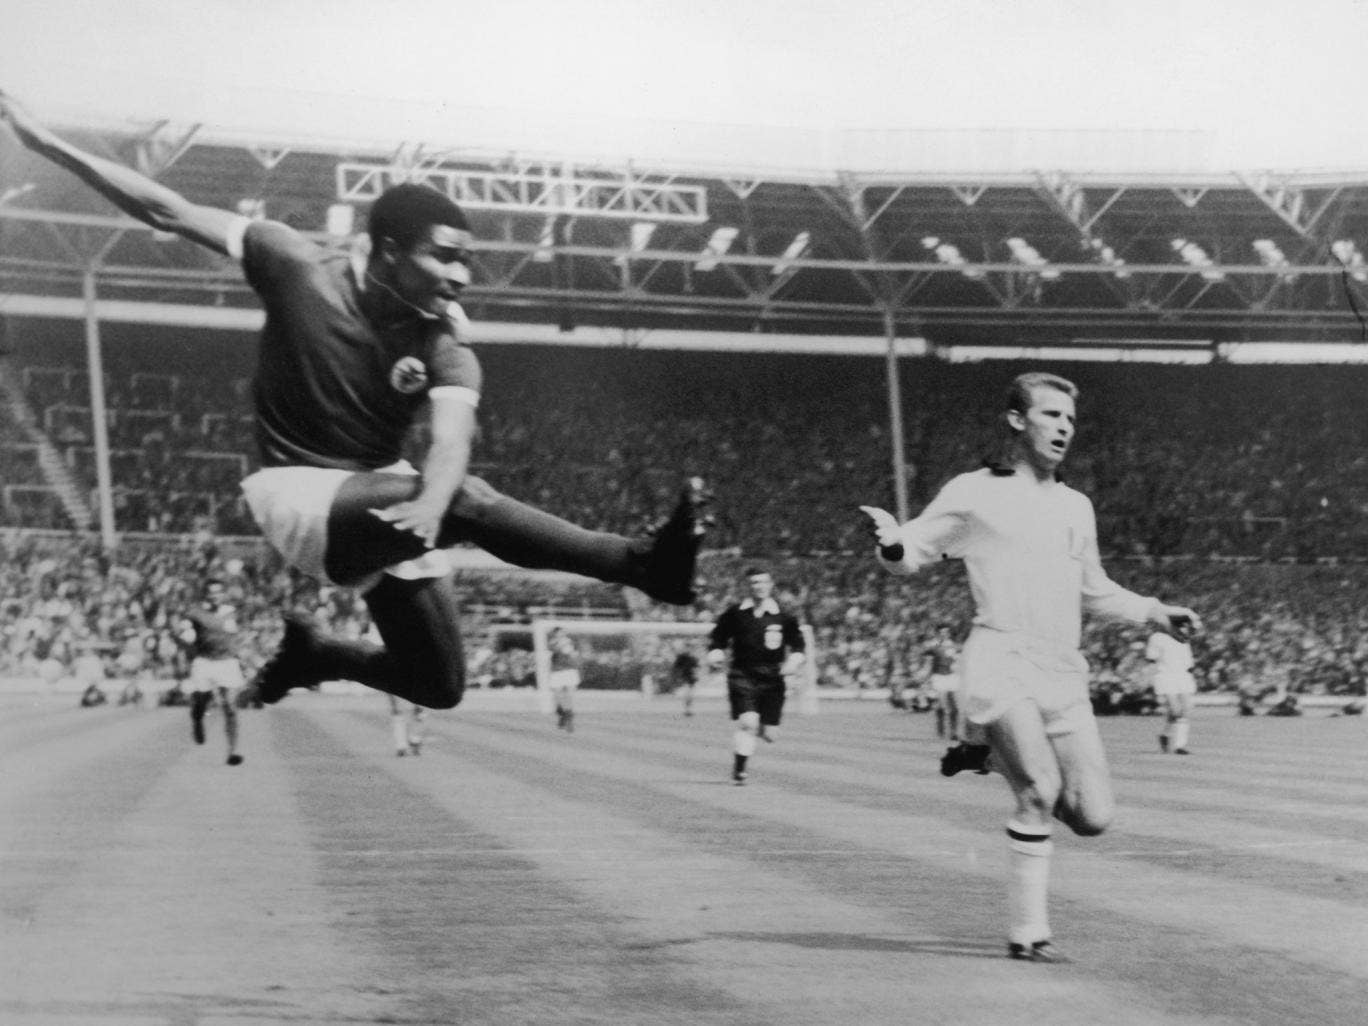 Eusebio scores for Benfica against Milan in the 1963 European Cup final at Wembley